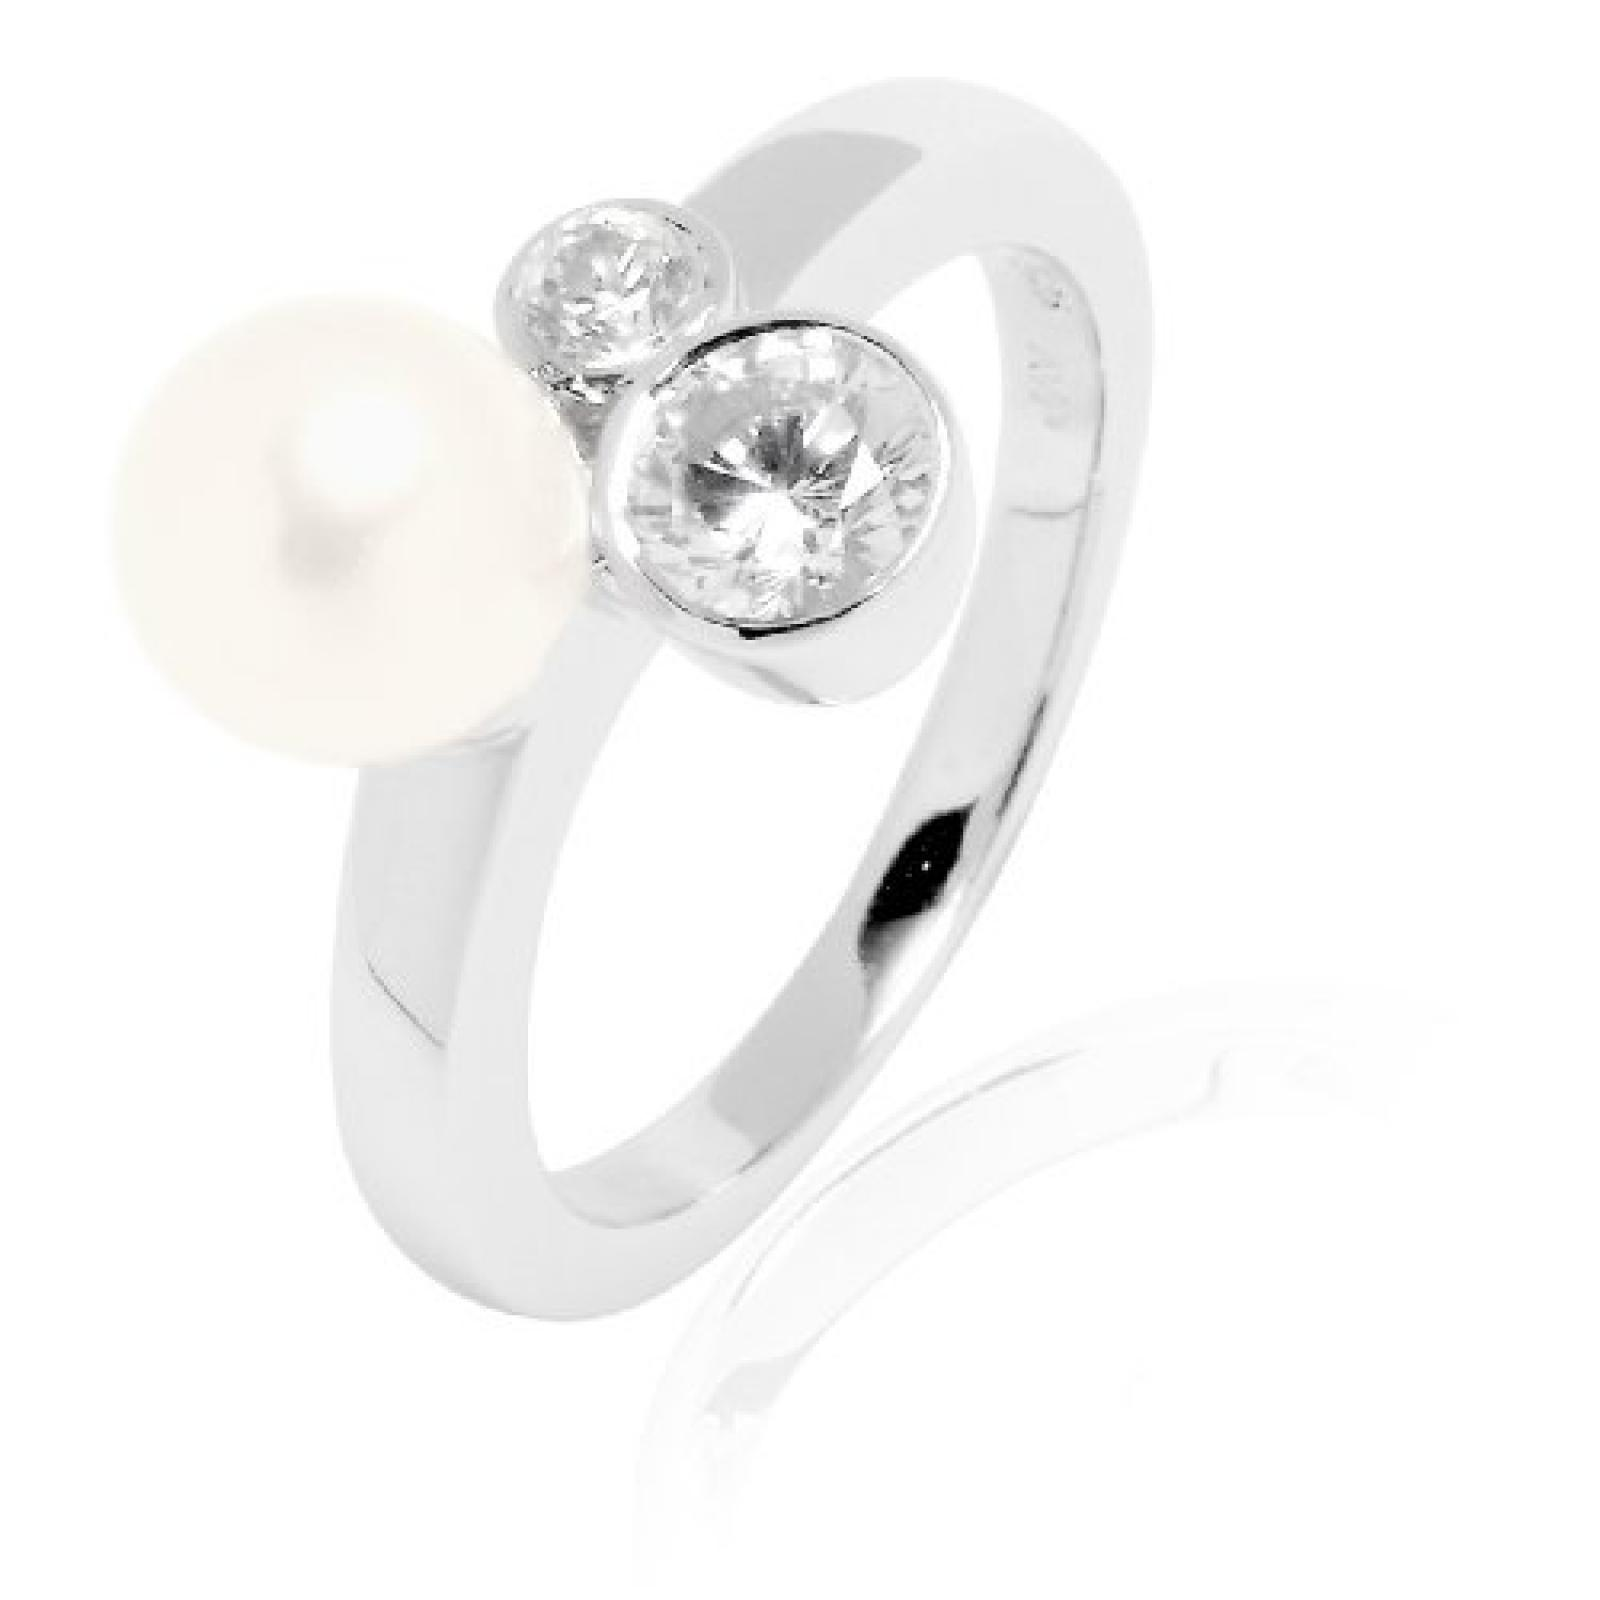 Valero Pearls Damen-Ring Silver Collection 925 Sterling Silber Süßwasser-Zuchtperlen weiß 60200012